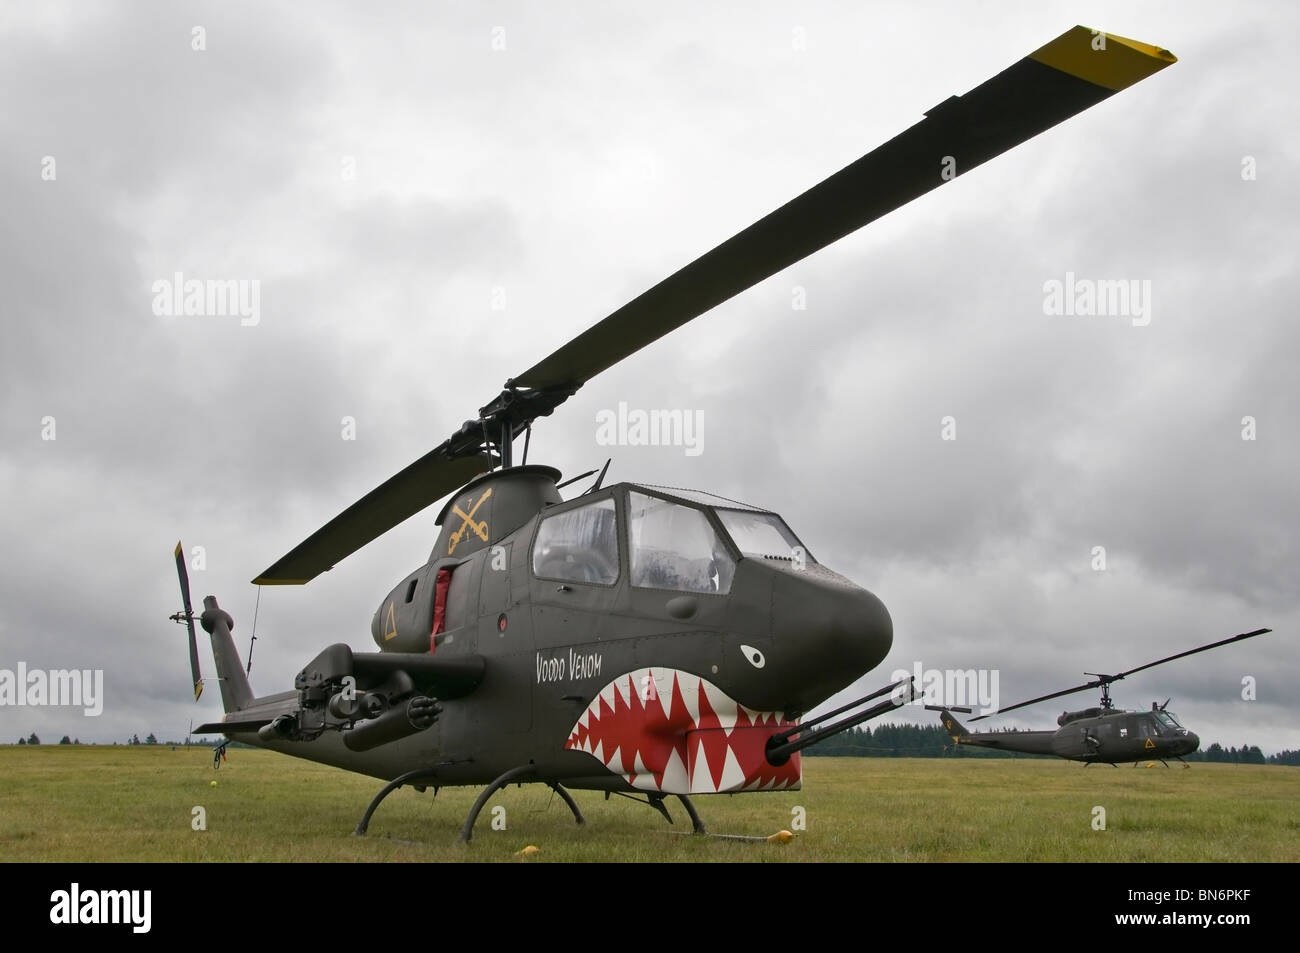 AH-1S Cobra Gunship military helicopter on display at the Olympic Airshow in Tumwater (Olympia), Washington. - Stock Image